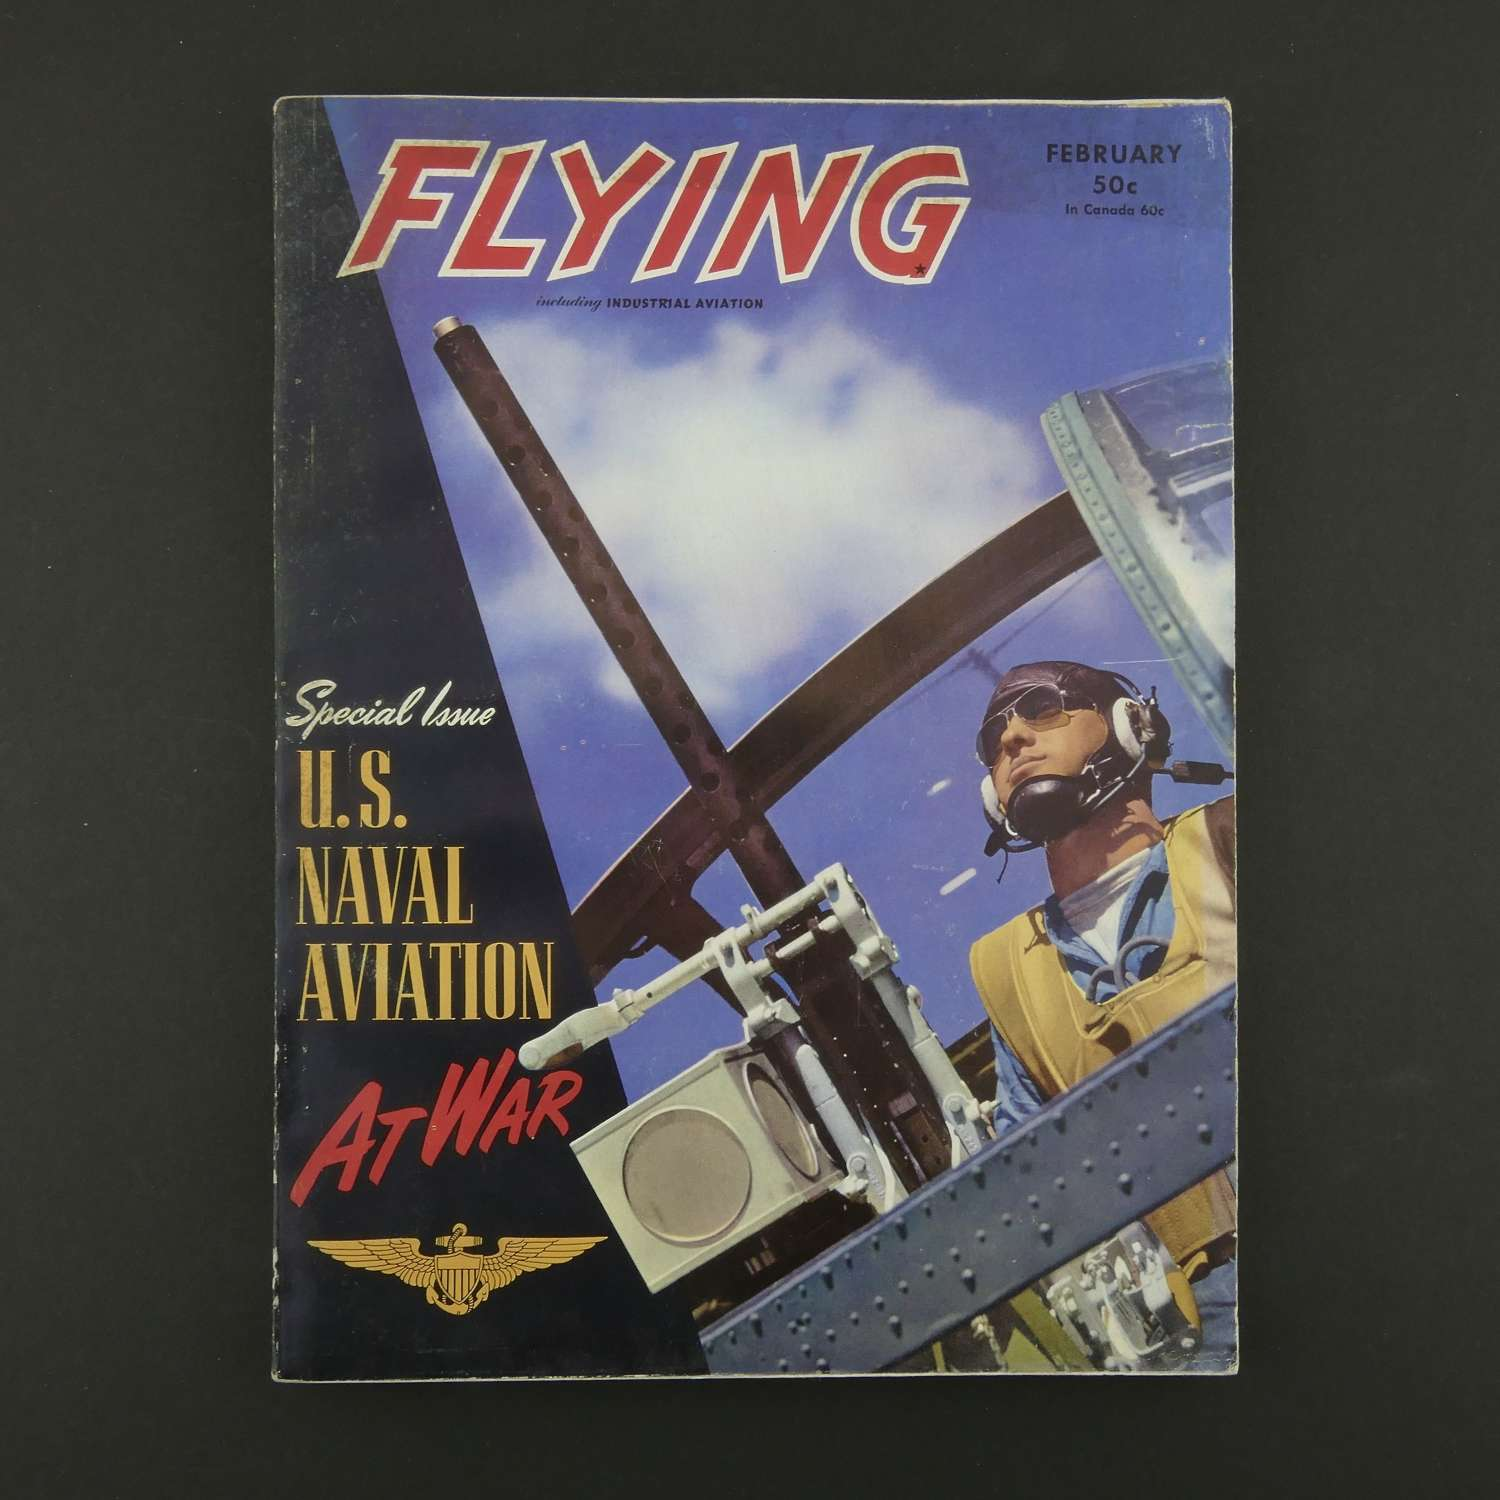 Flying magazine - Special Issue, U.S Naval Aviation, 1943